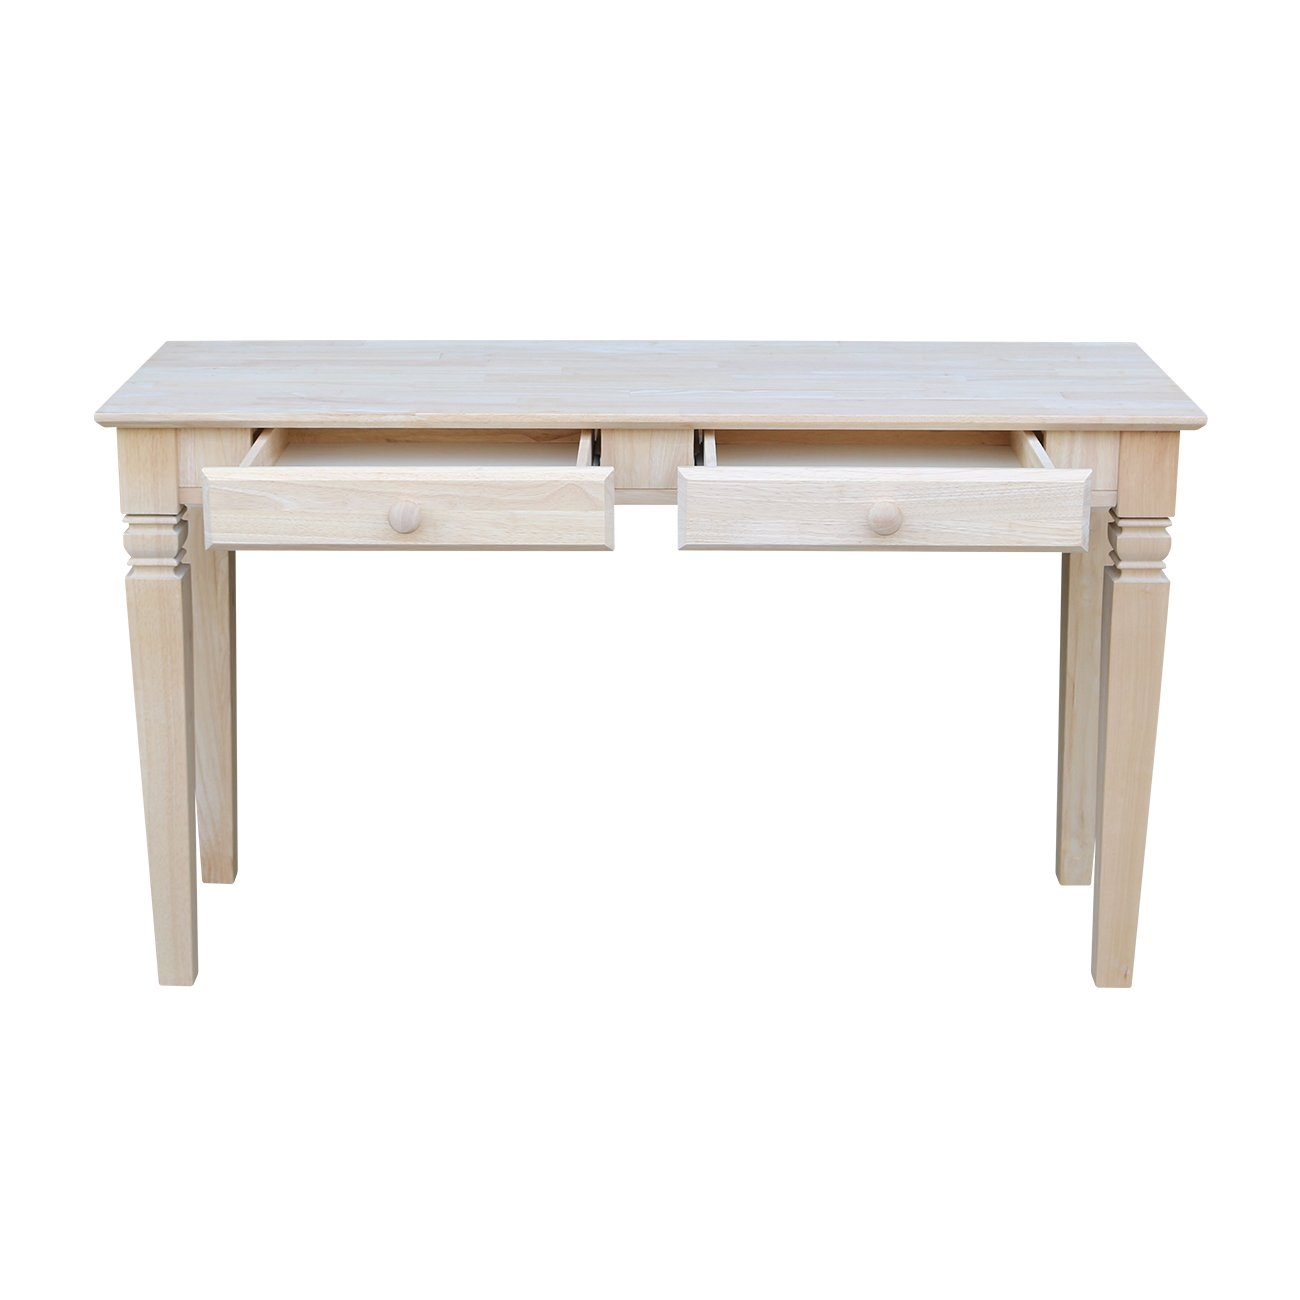 Amazon international concepts ot 60s2 java sofa table with 2 amazon international concepts ot 60s2 java sofa table with 2 drawers unfinished kitchen dining geotapseo Images